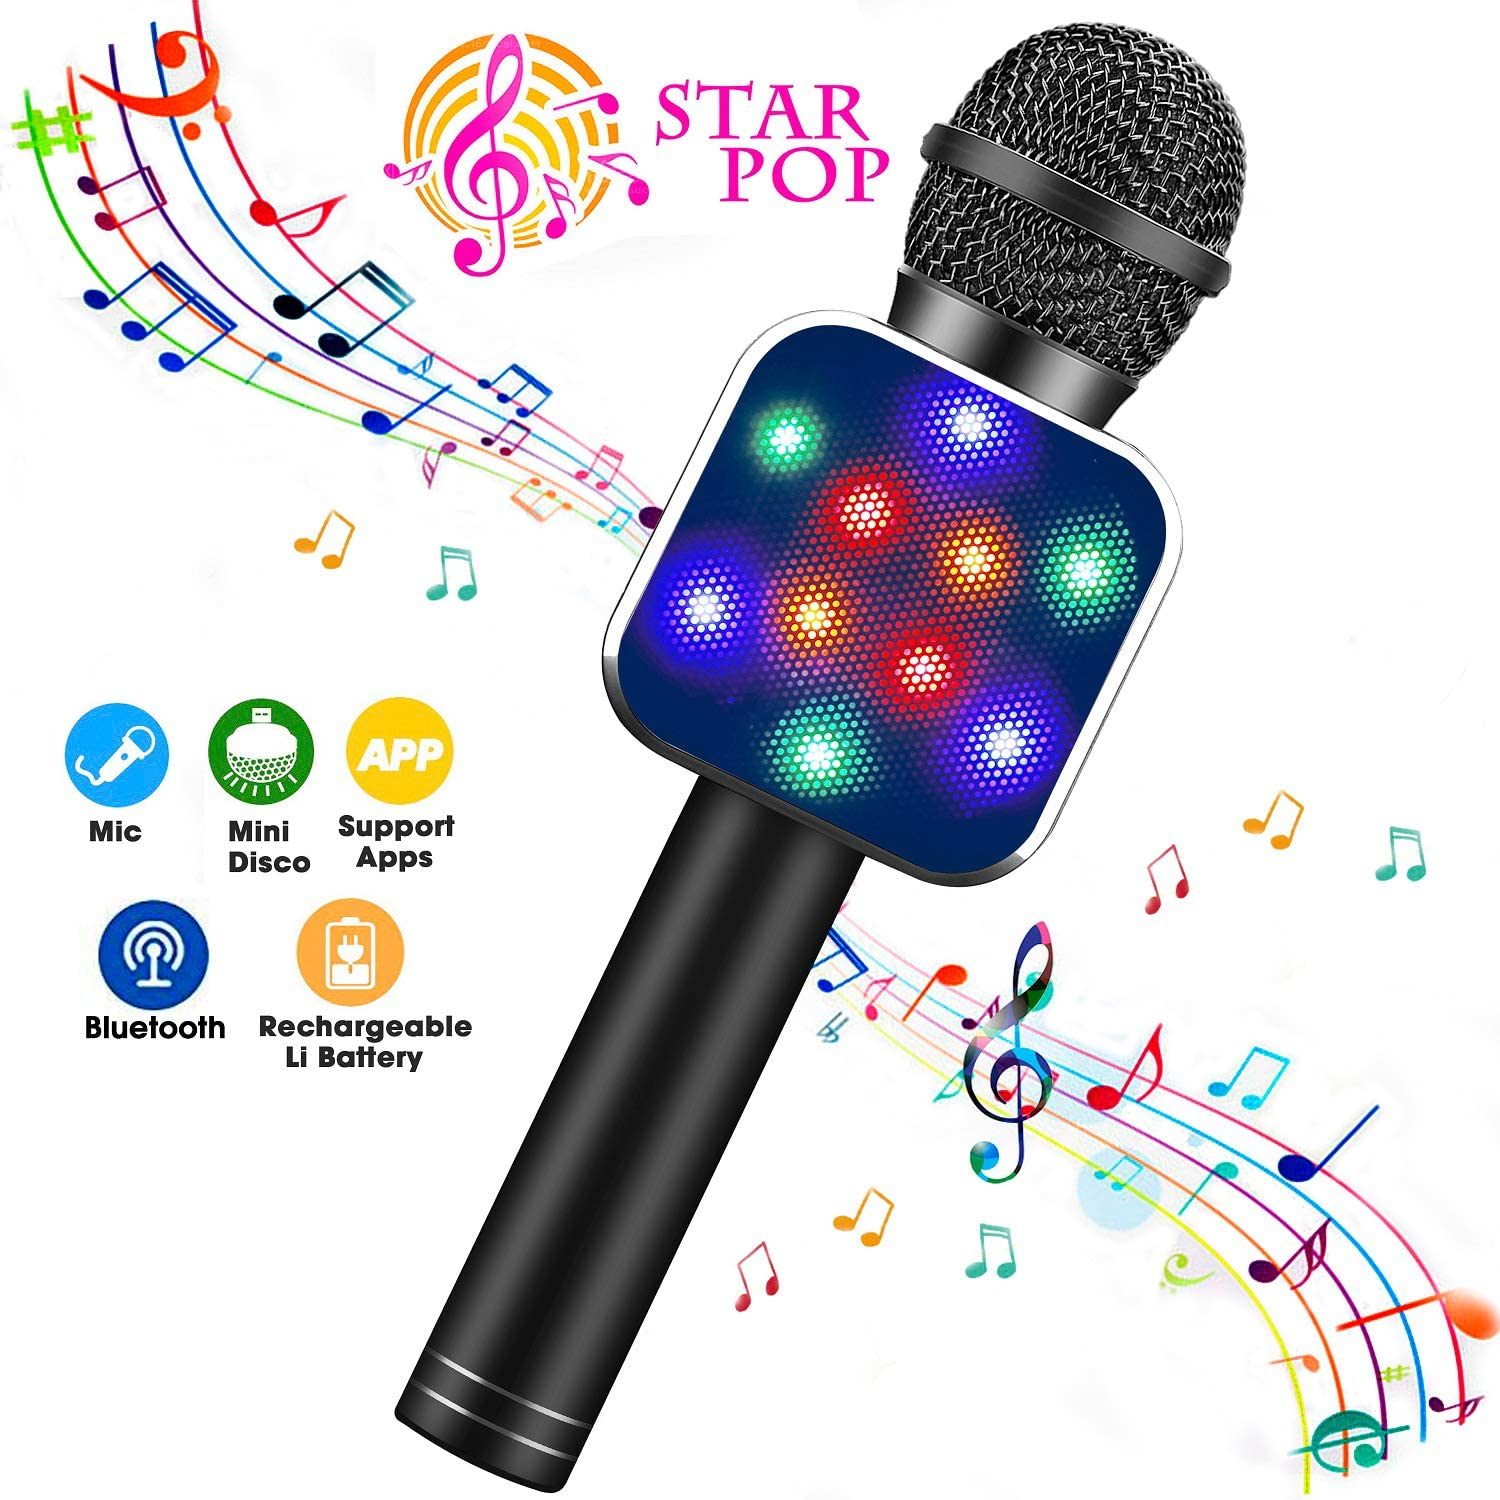 BlueFire Wireless Bluetooth Karaoke Microphone 5 in 1 Handheld Karaoke Microphone with LED Lights Perfect Gifts Toys for 4-12 Year Old Girls Boys Pink Portable Microphone for Kids